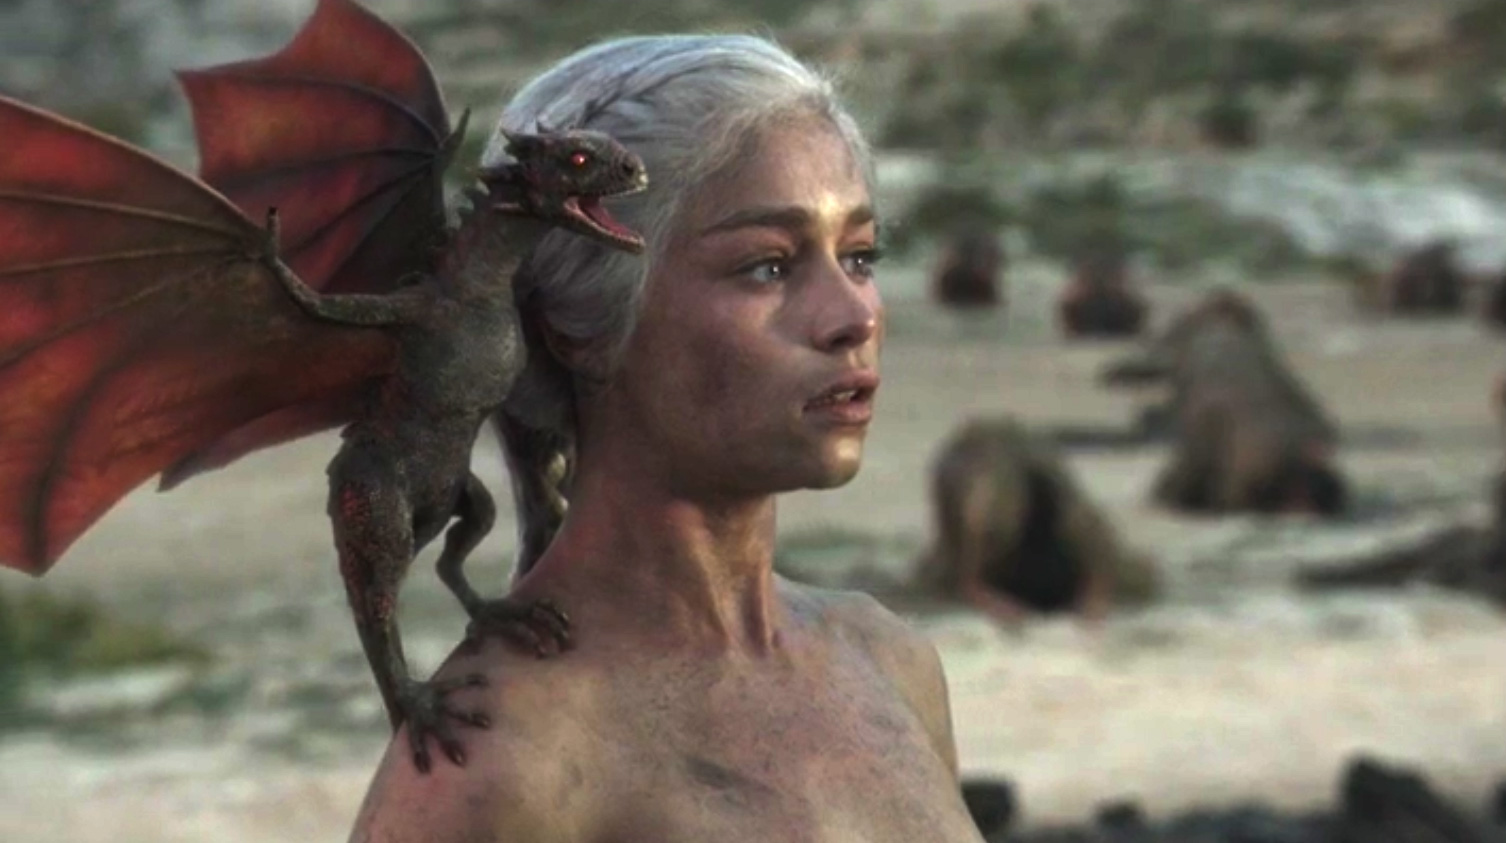 Game of Thrones Quick Review: Season 1 to 3 is Epic - Live ...